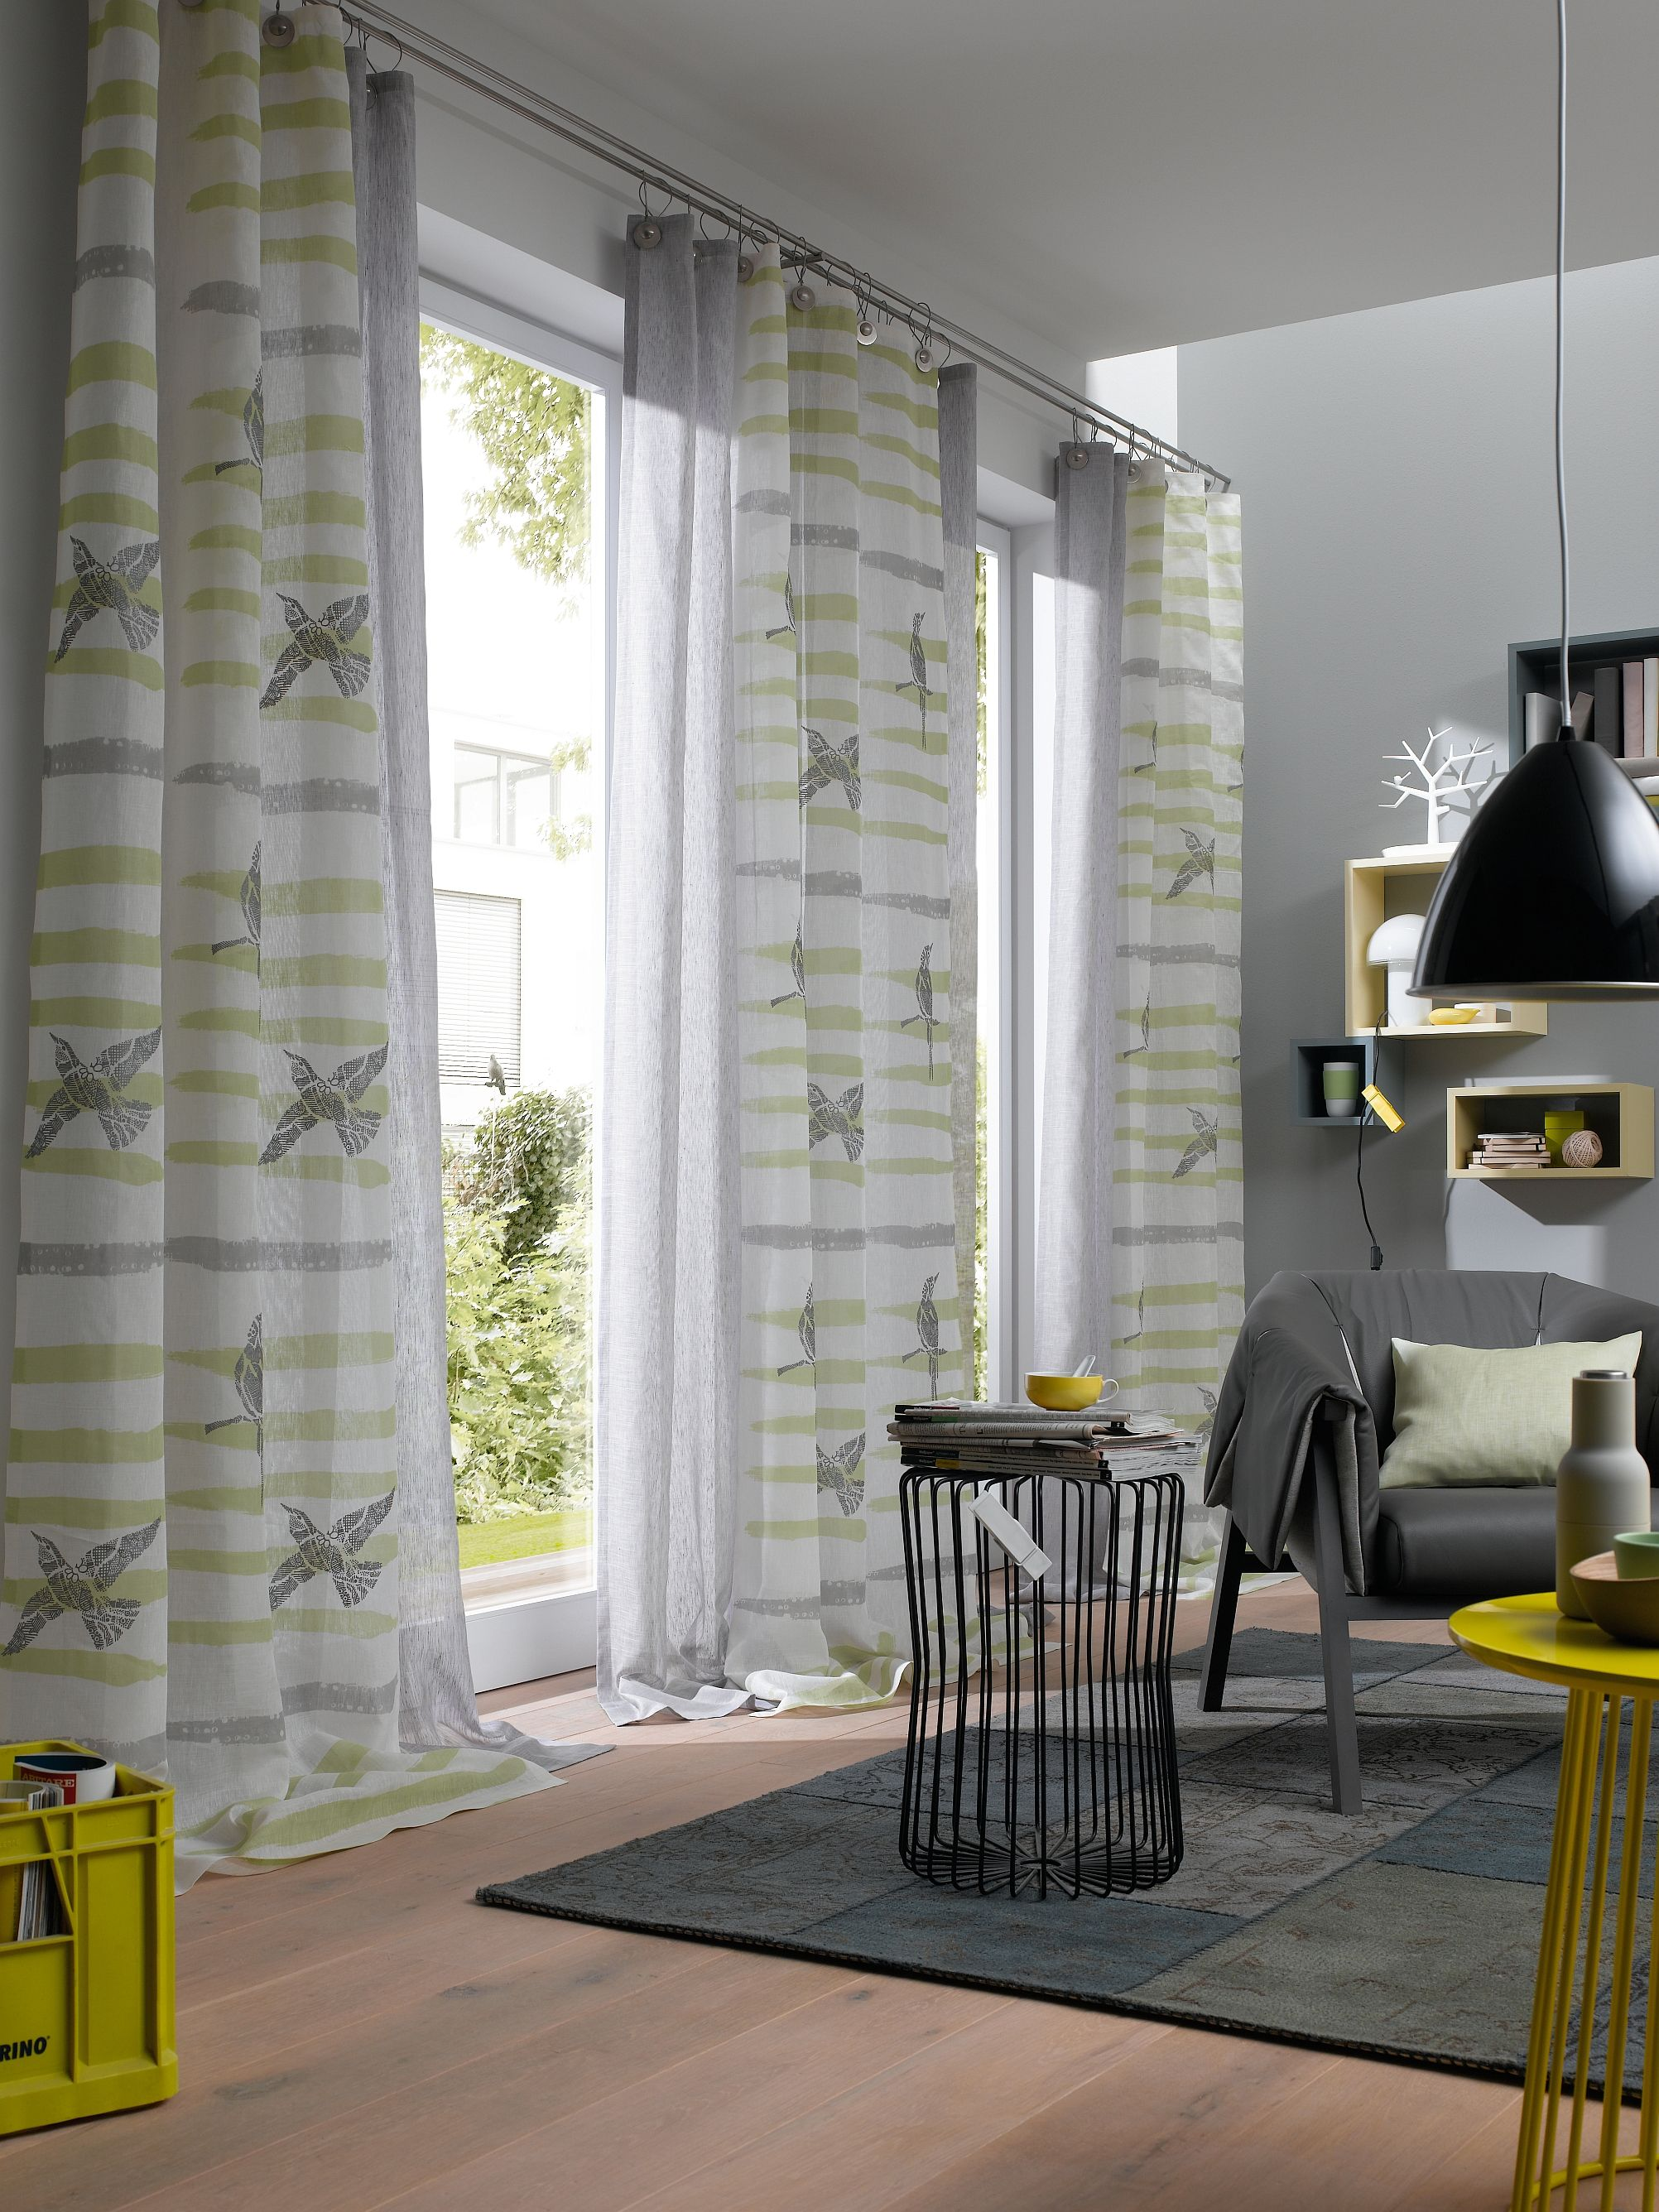 ado dessin early bird stoff fabric vorhang gardine curtain vogel gelb yellow. Black Bedroom Furniture Sets. Home Design Ideas